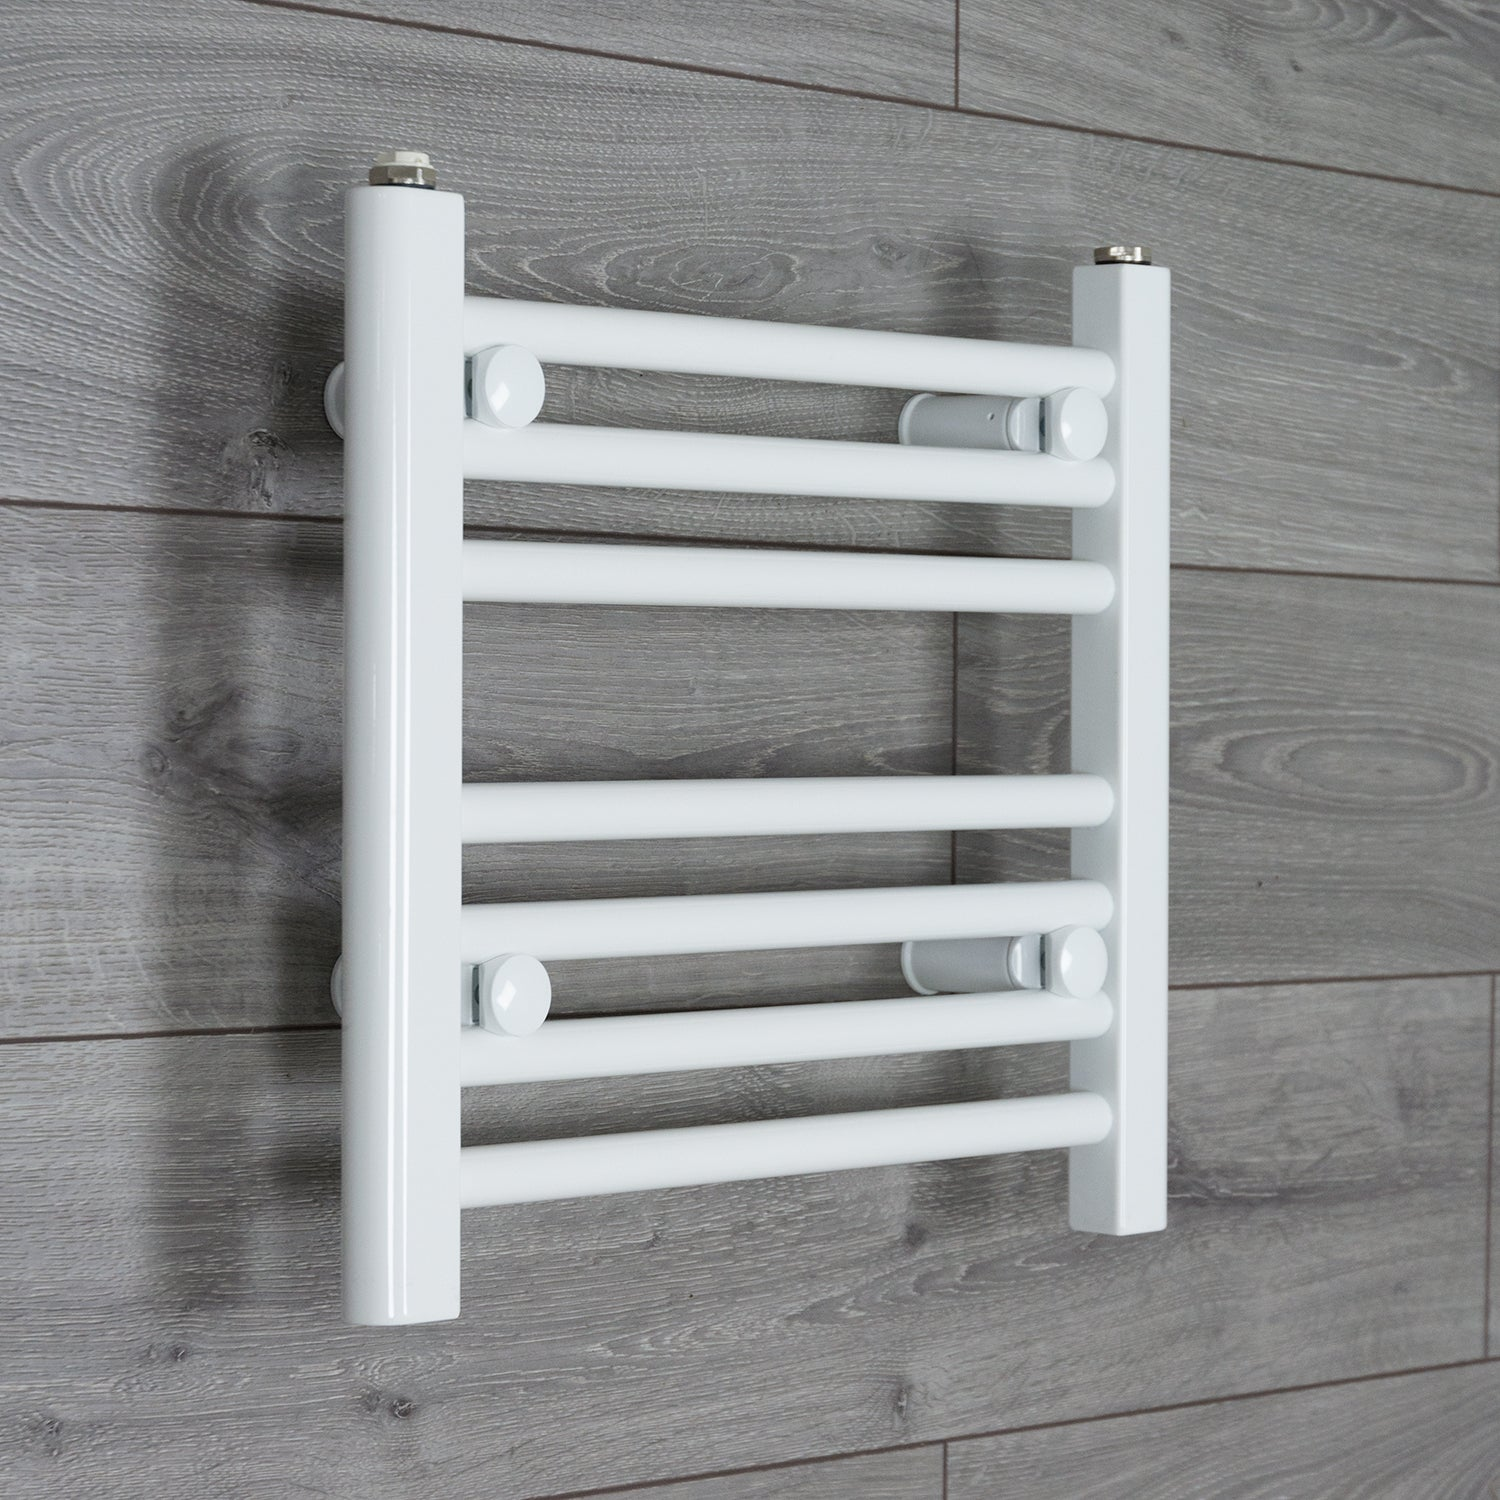 500mm Wide 400mm High White Towel Rail Radiator